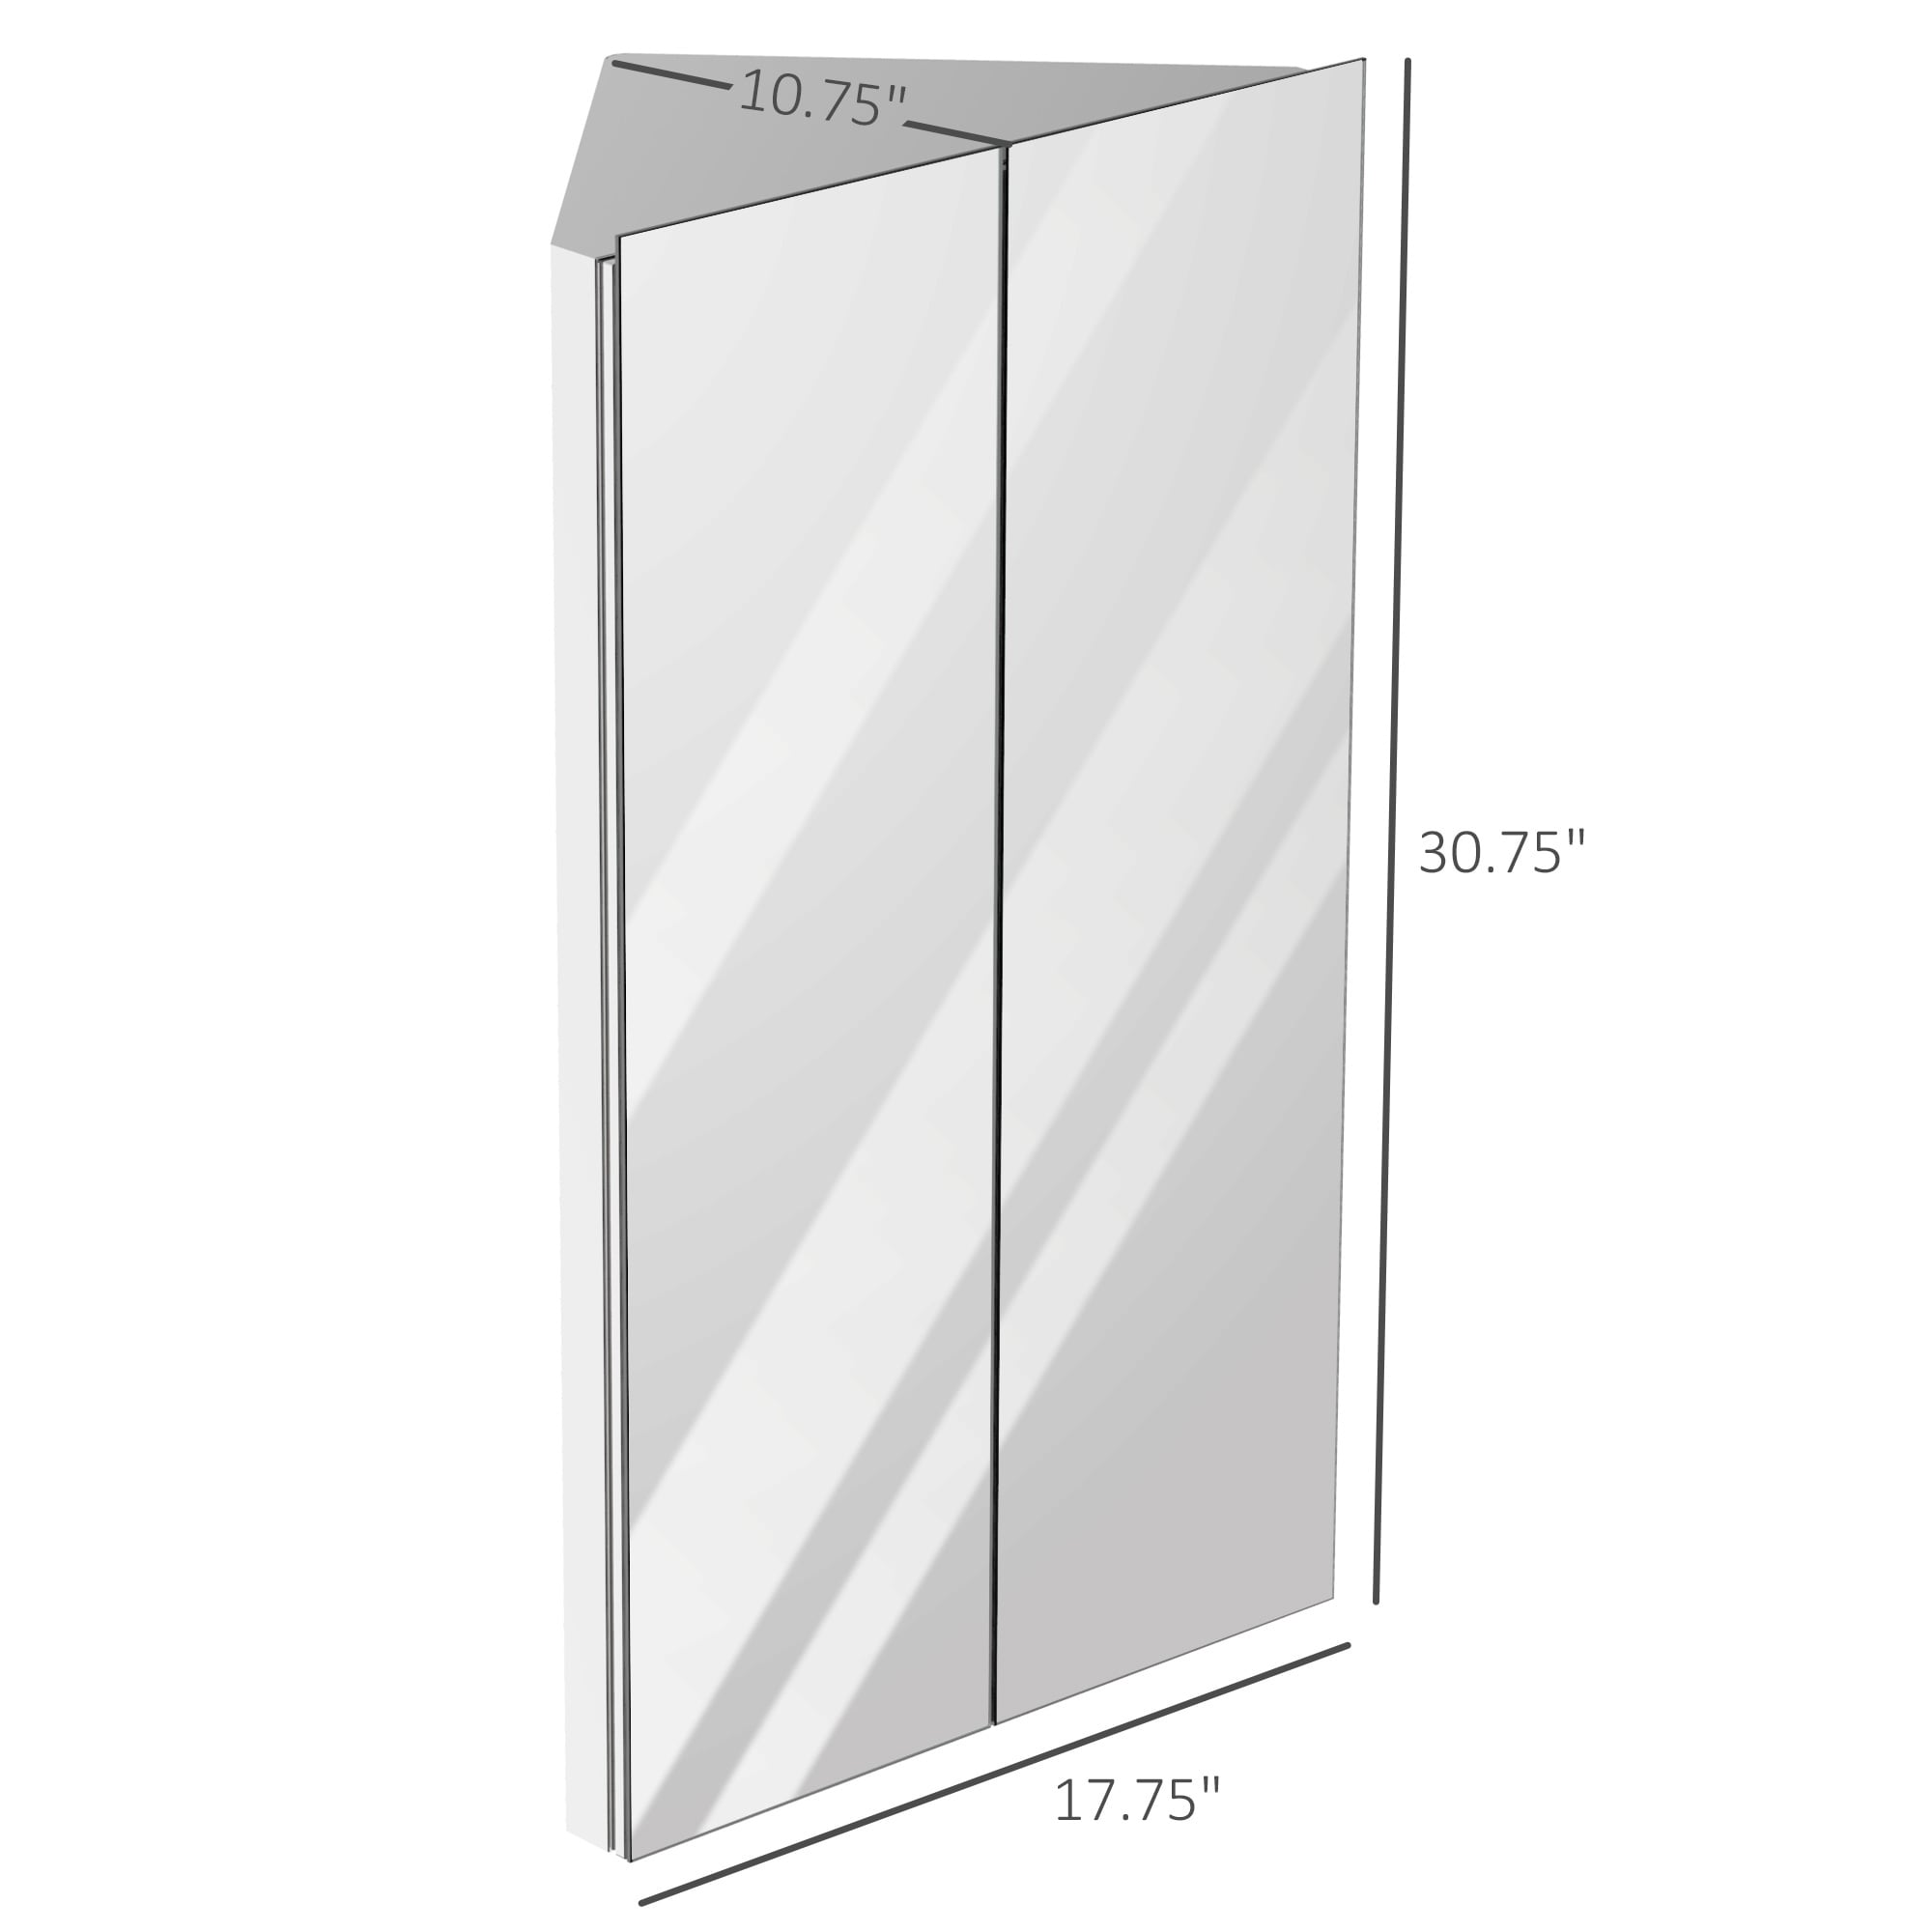 Multipurpose Storage Organizer for Bathroom kleankin Corner Mirror Cabinet Wall Mounted with Double Doors and 3 Shelves